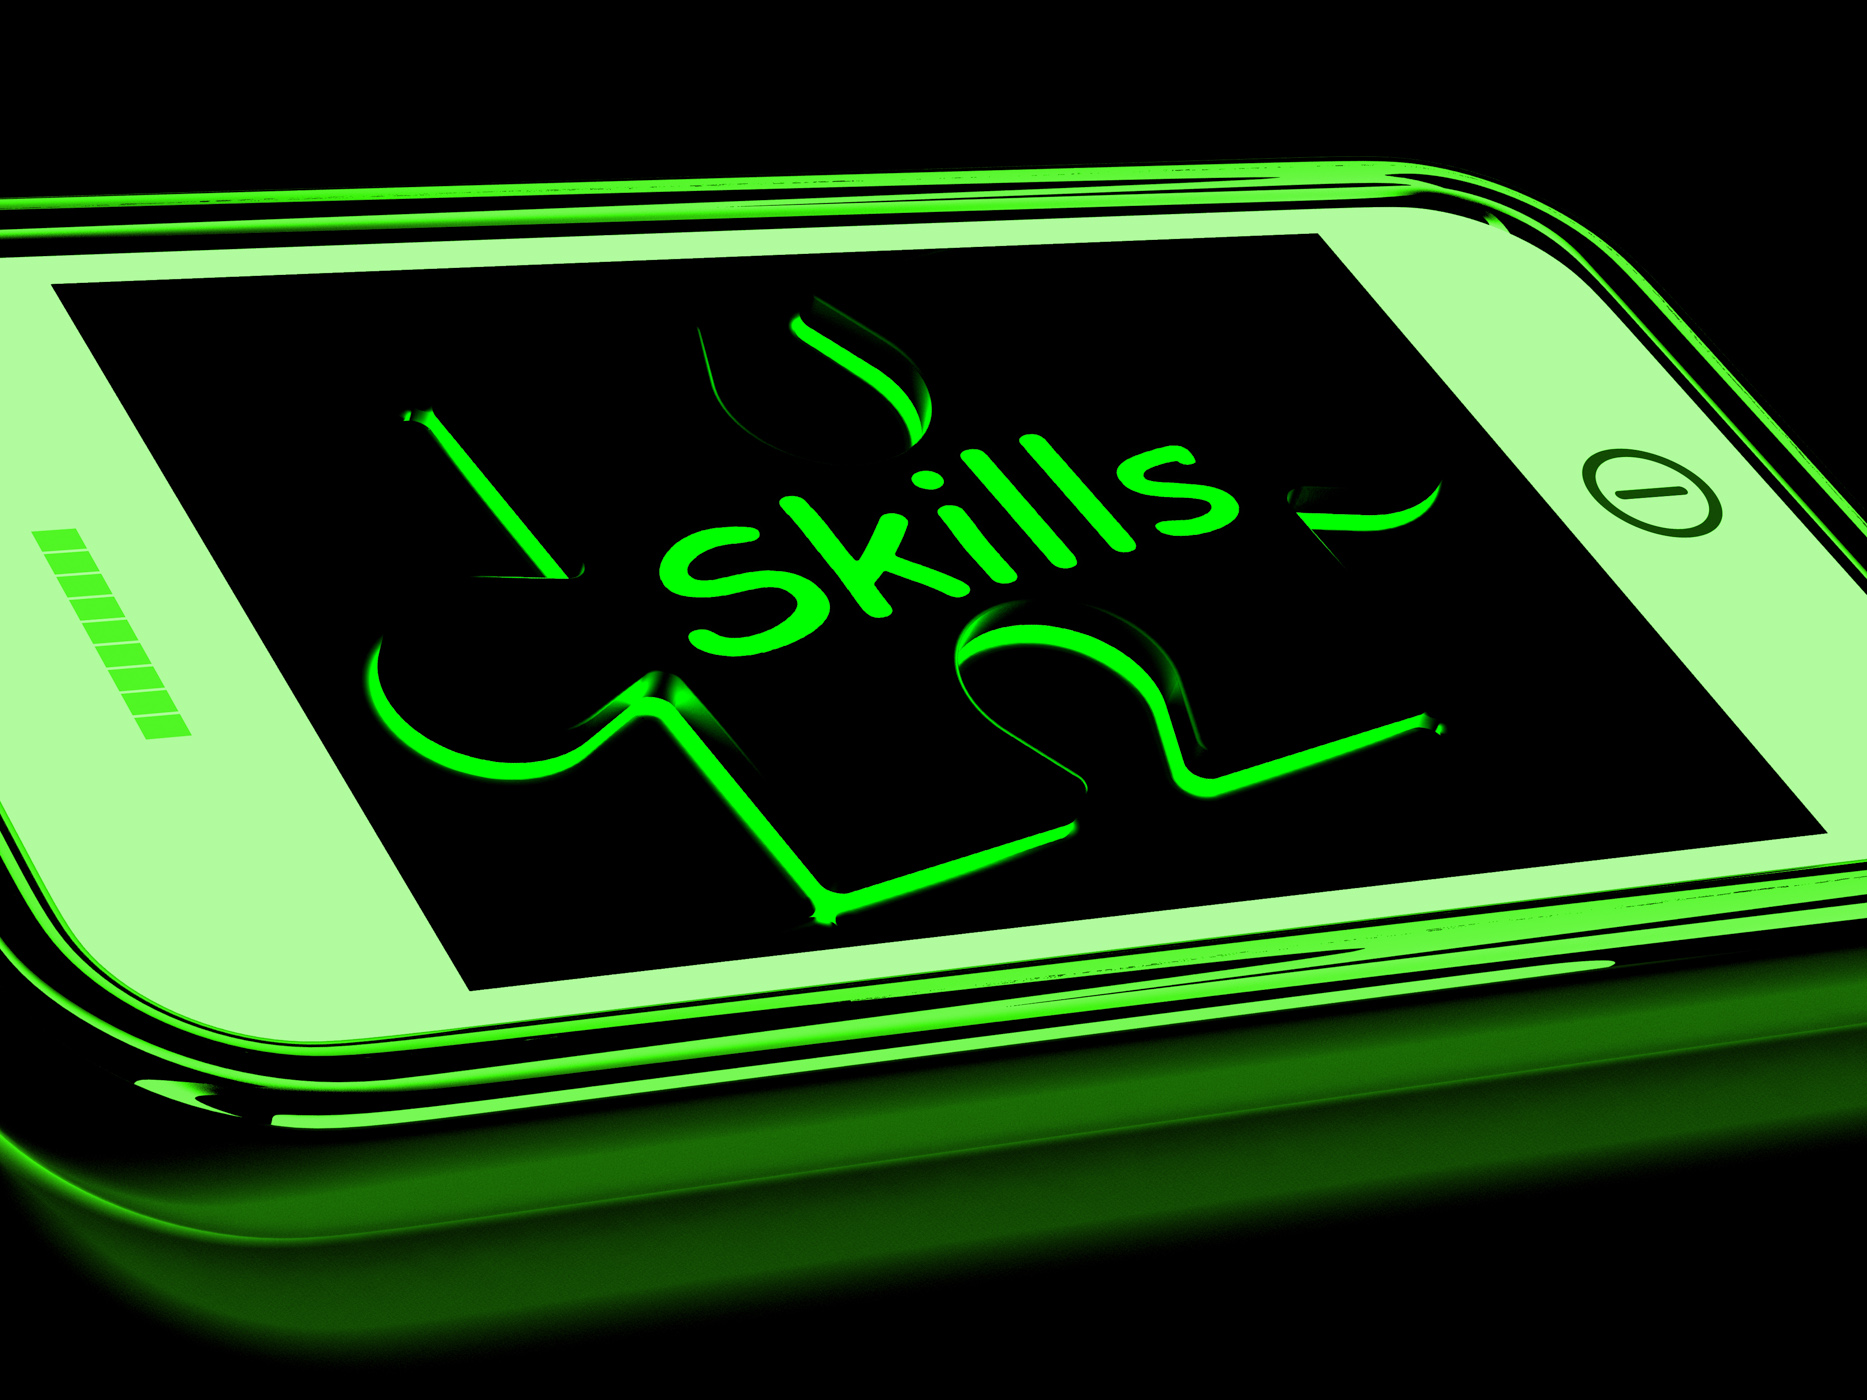 Skills On Smartphone Shows Abilities, And Talents, Abilities, Mobile, Talent, Smartphone, HQ Photo